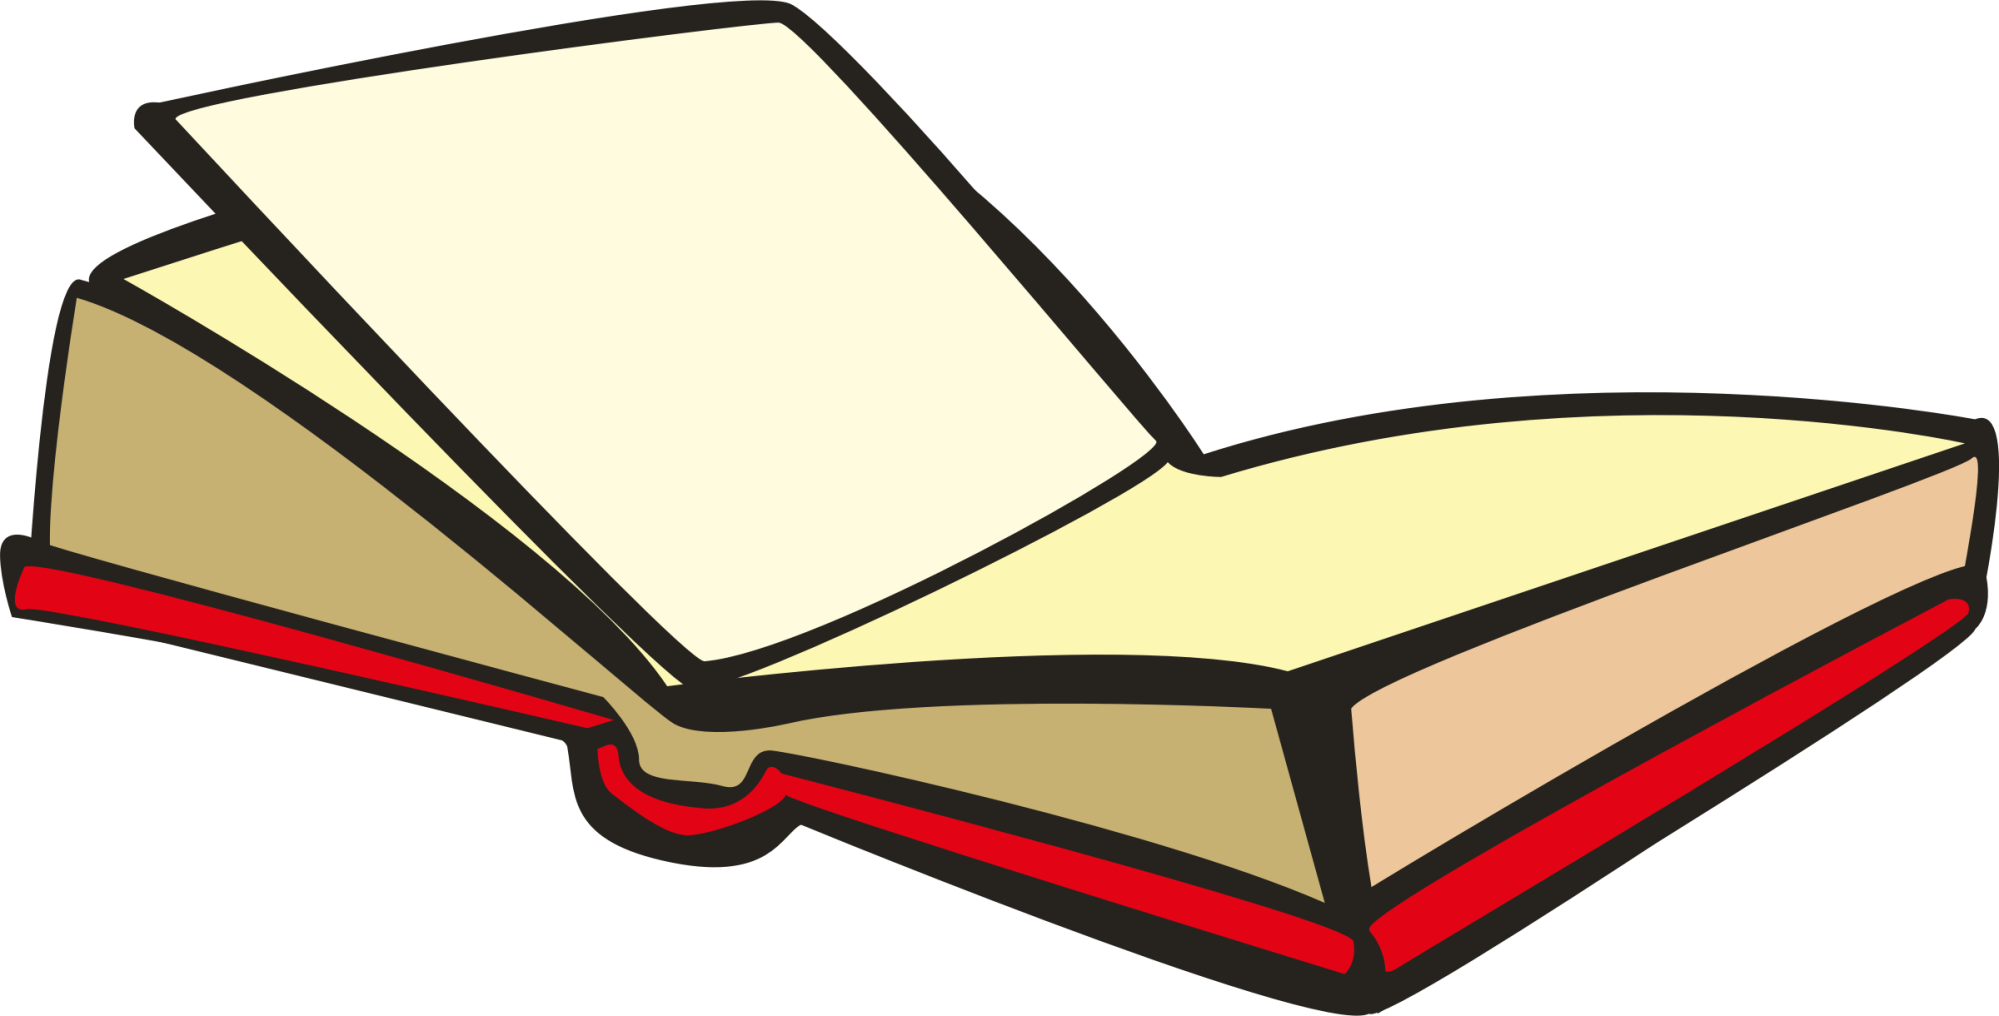 hight resolution of book clipart open book big image png